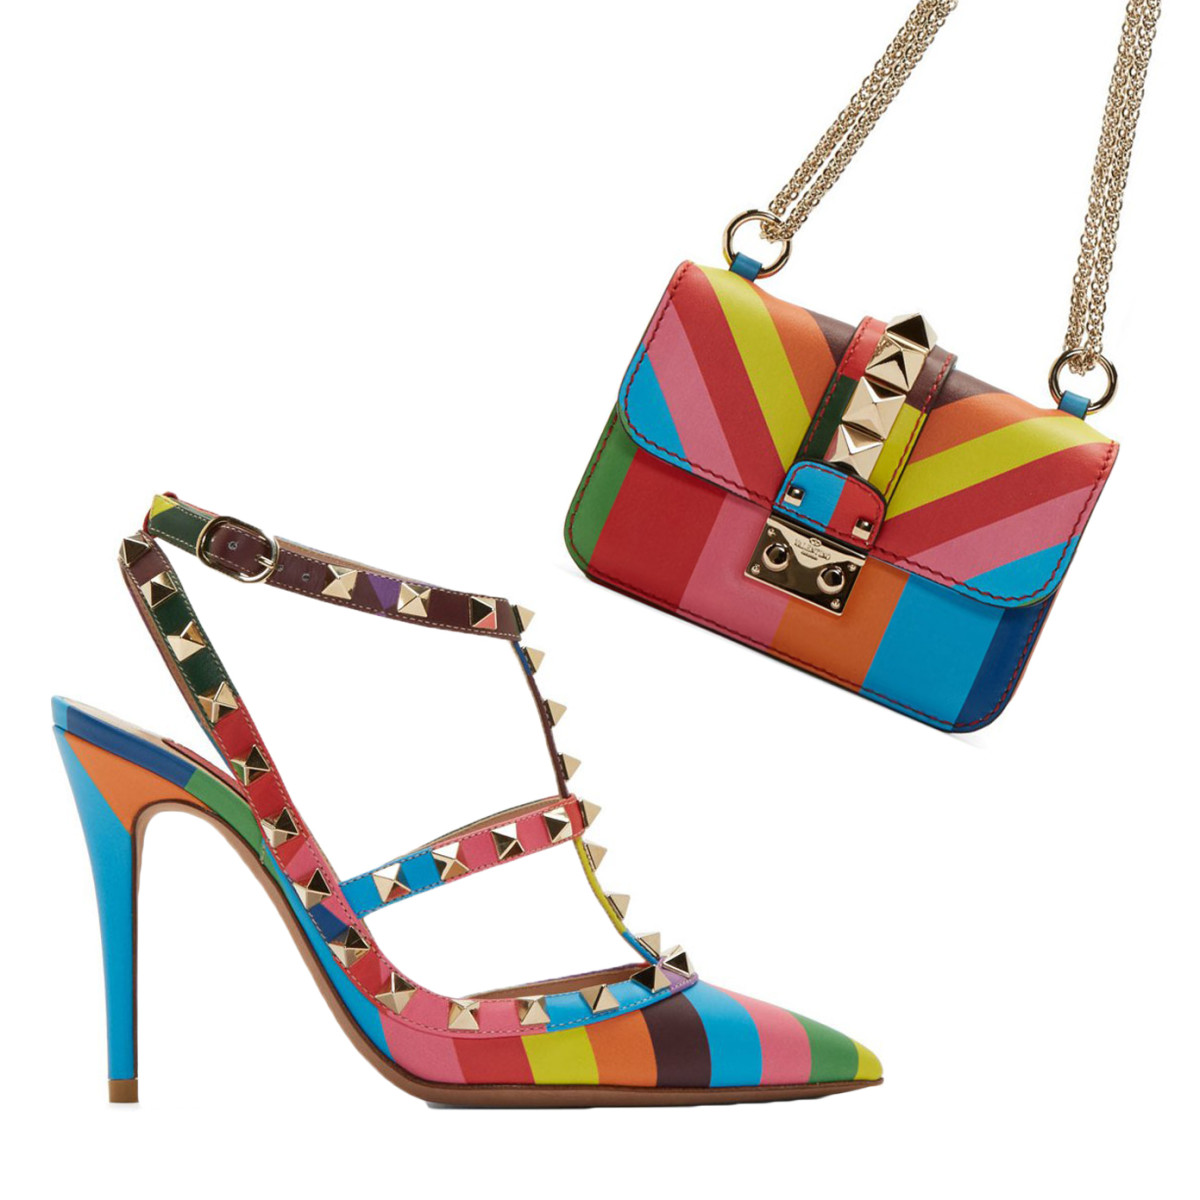 Valentino Rainbow Chevron 1973 Print Rockstud Pumps, $1195, available at SSENSE. Valentino Green & Blue Leather Rockstud Striped Bag, $2195, available at SSENSE.